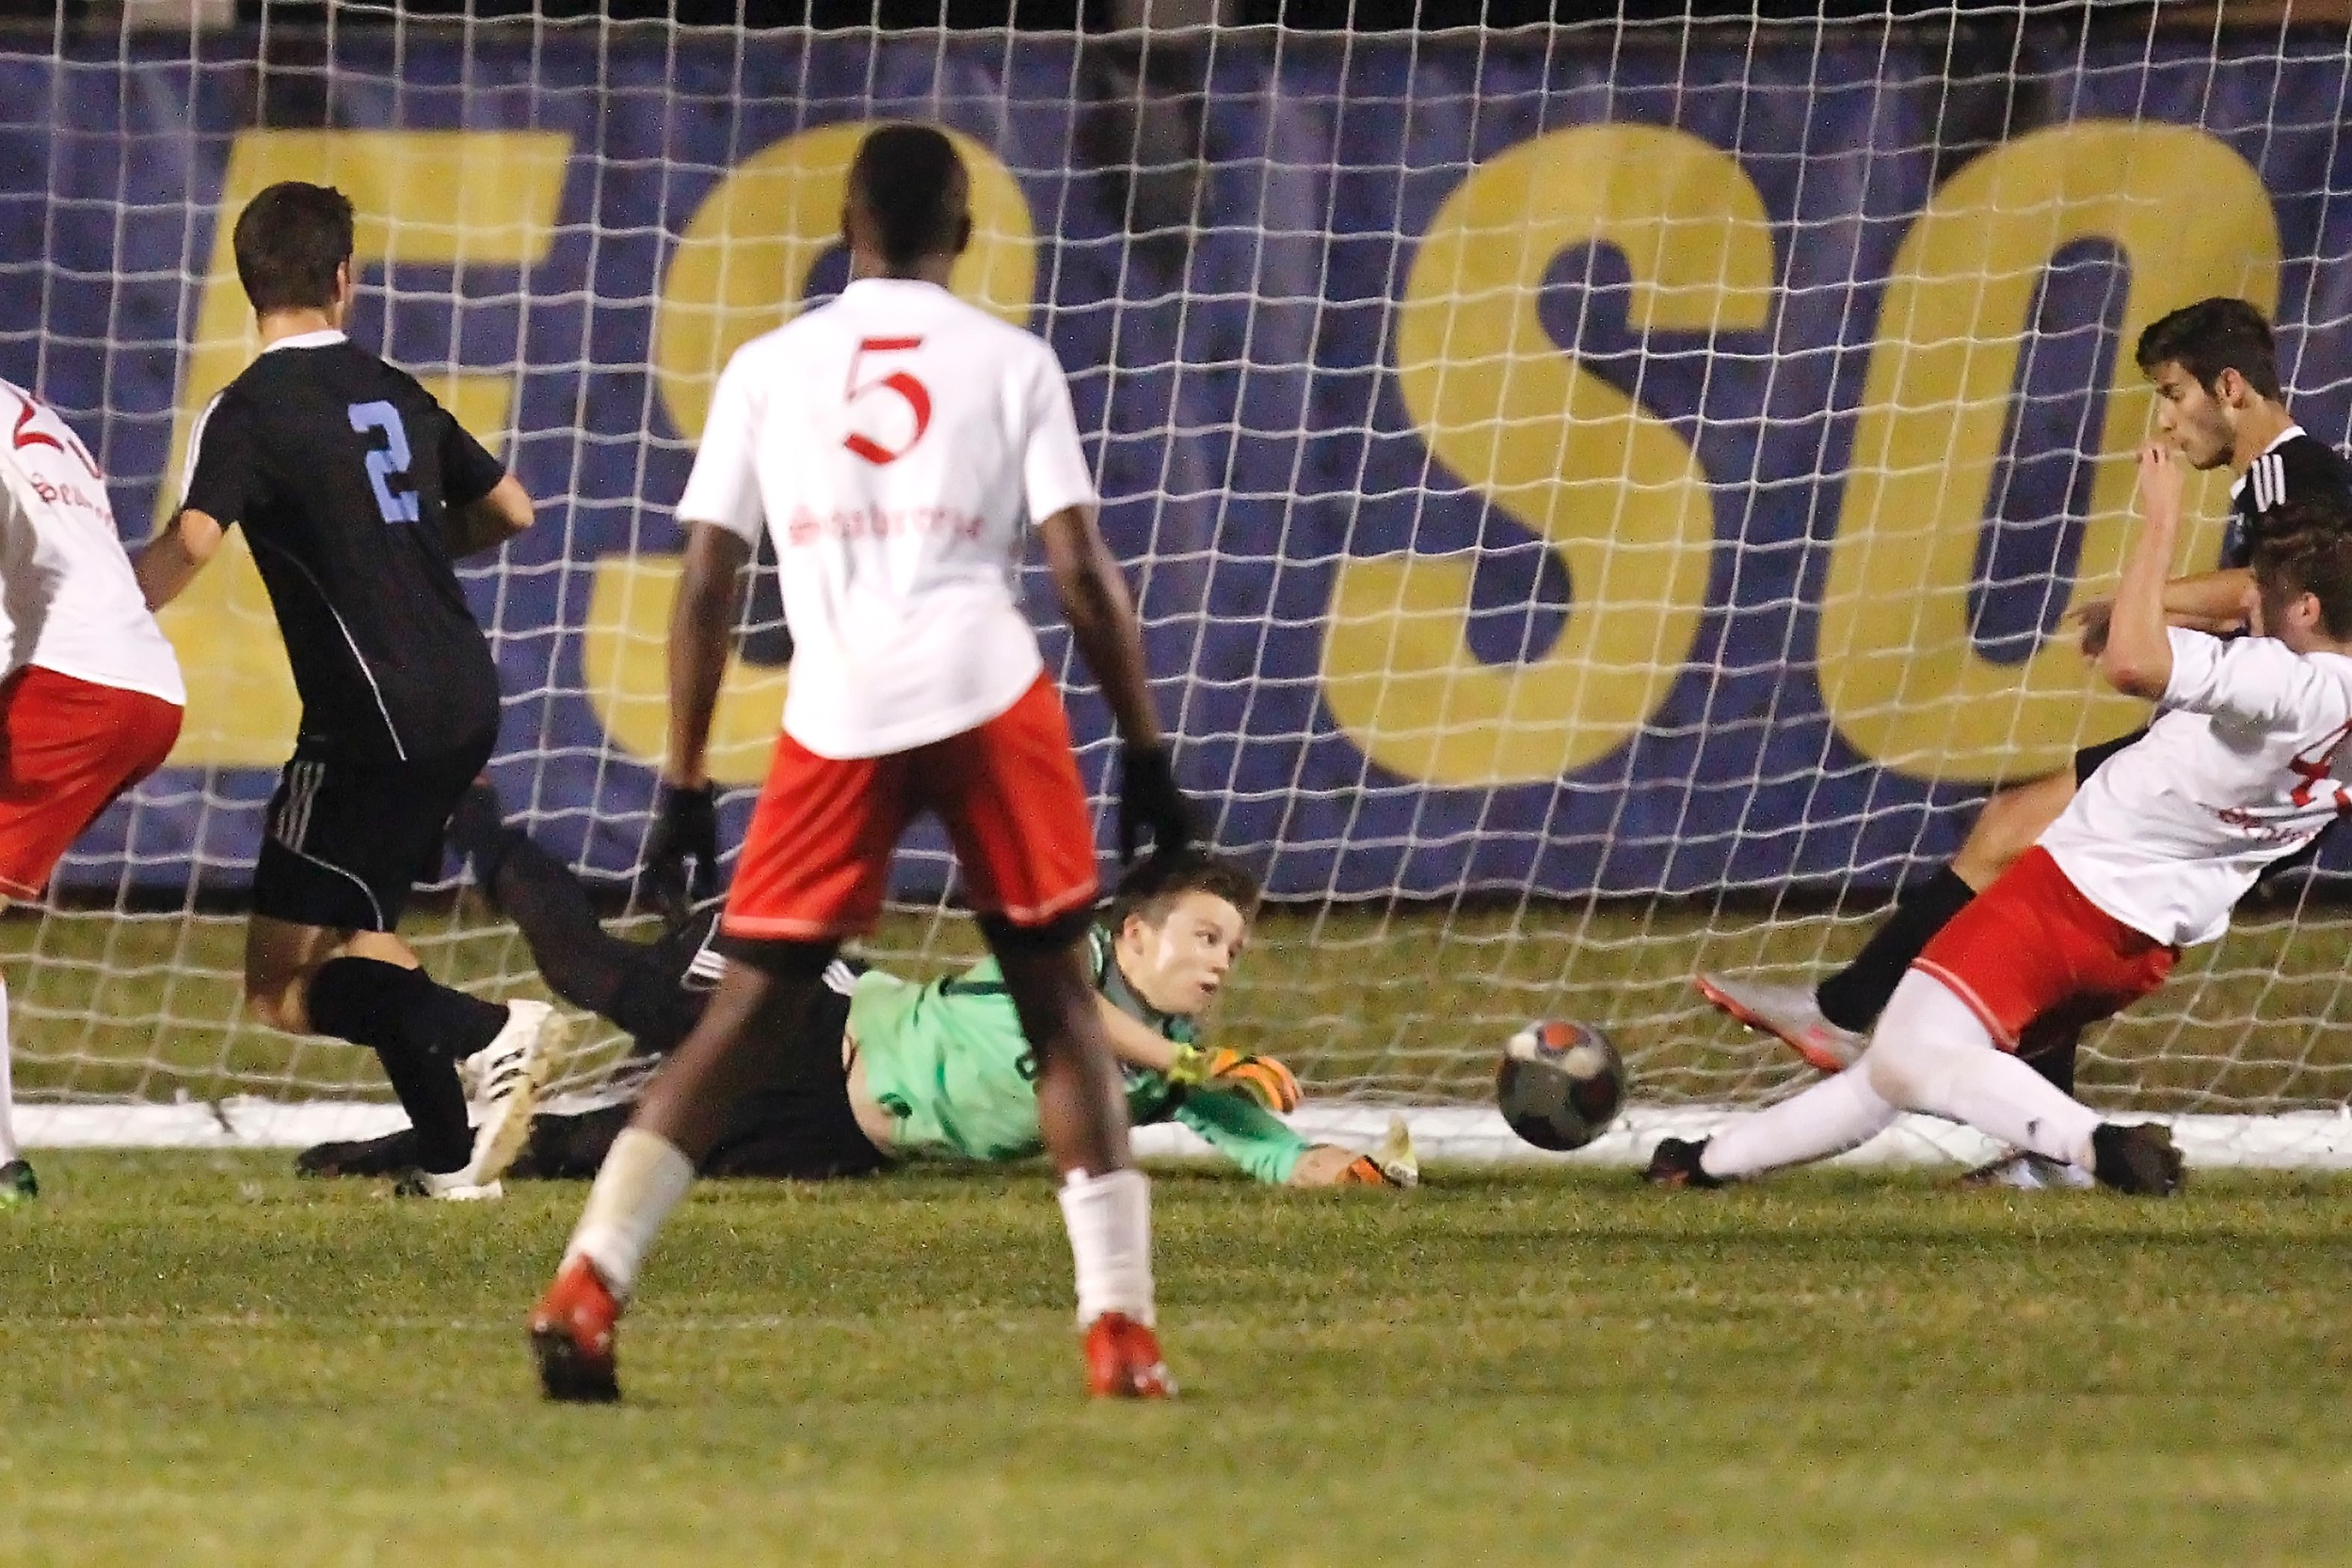 Shark keeper Brian Salzman makes a valiant but futile effort to stop the Seabreeze game-winning goal.